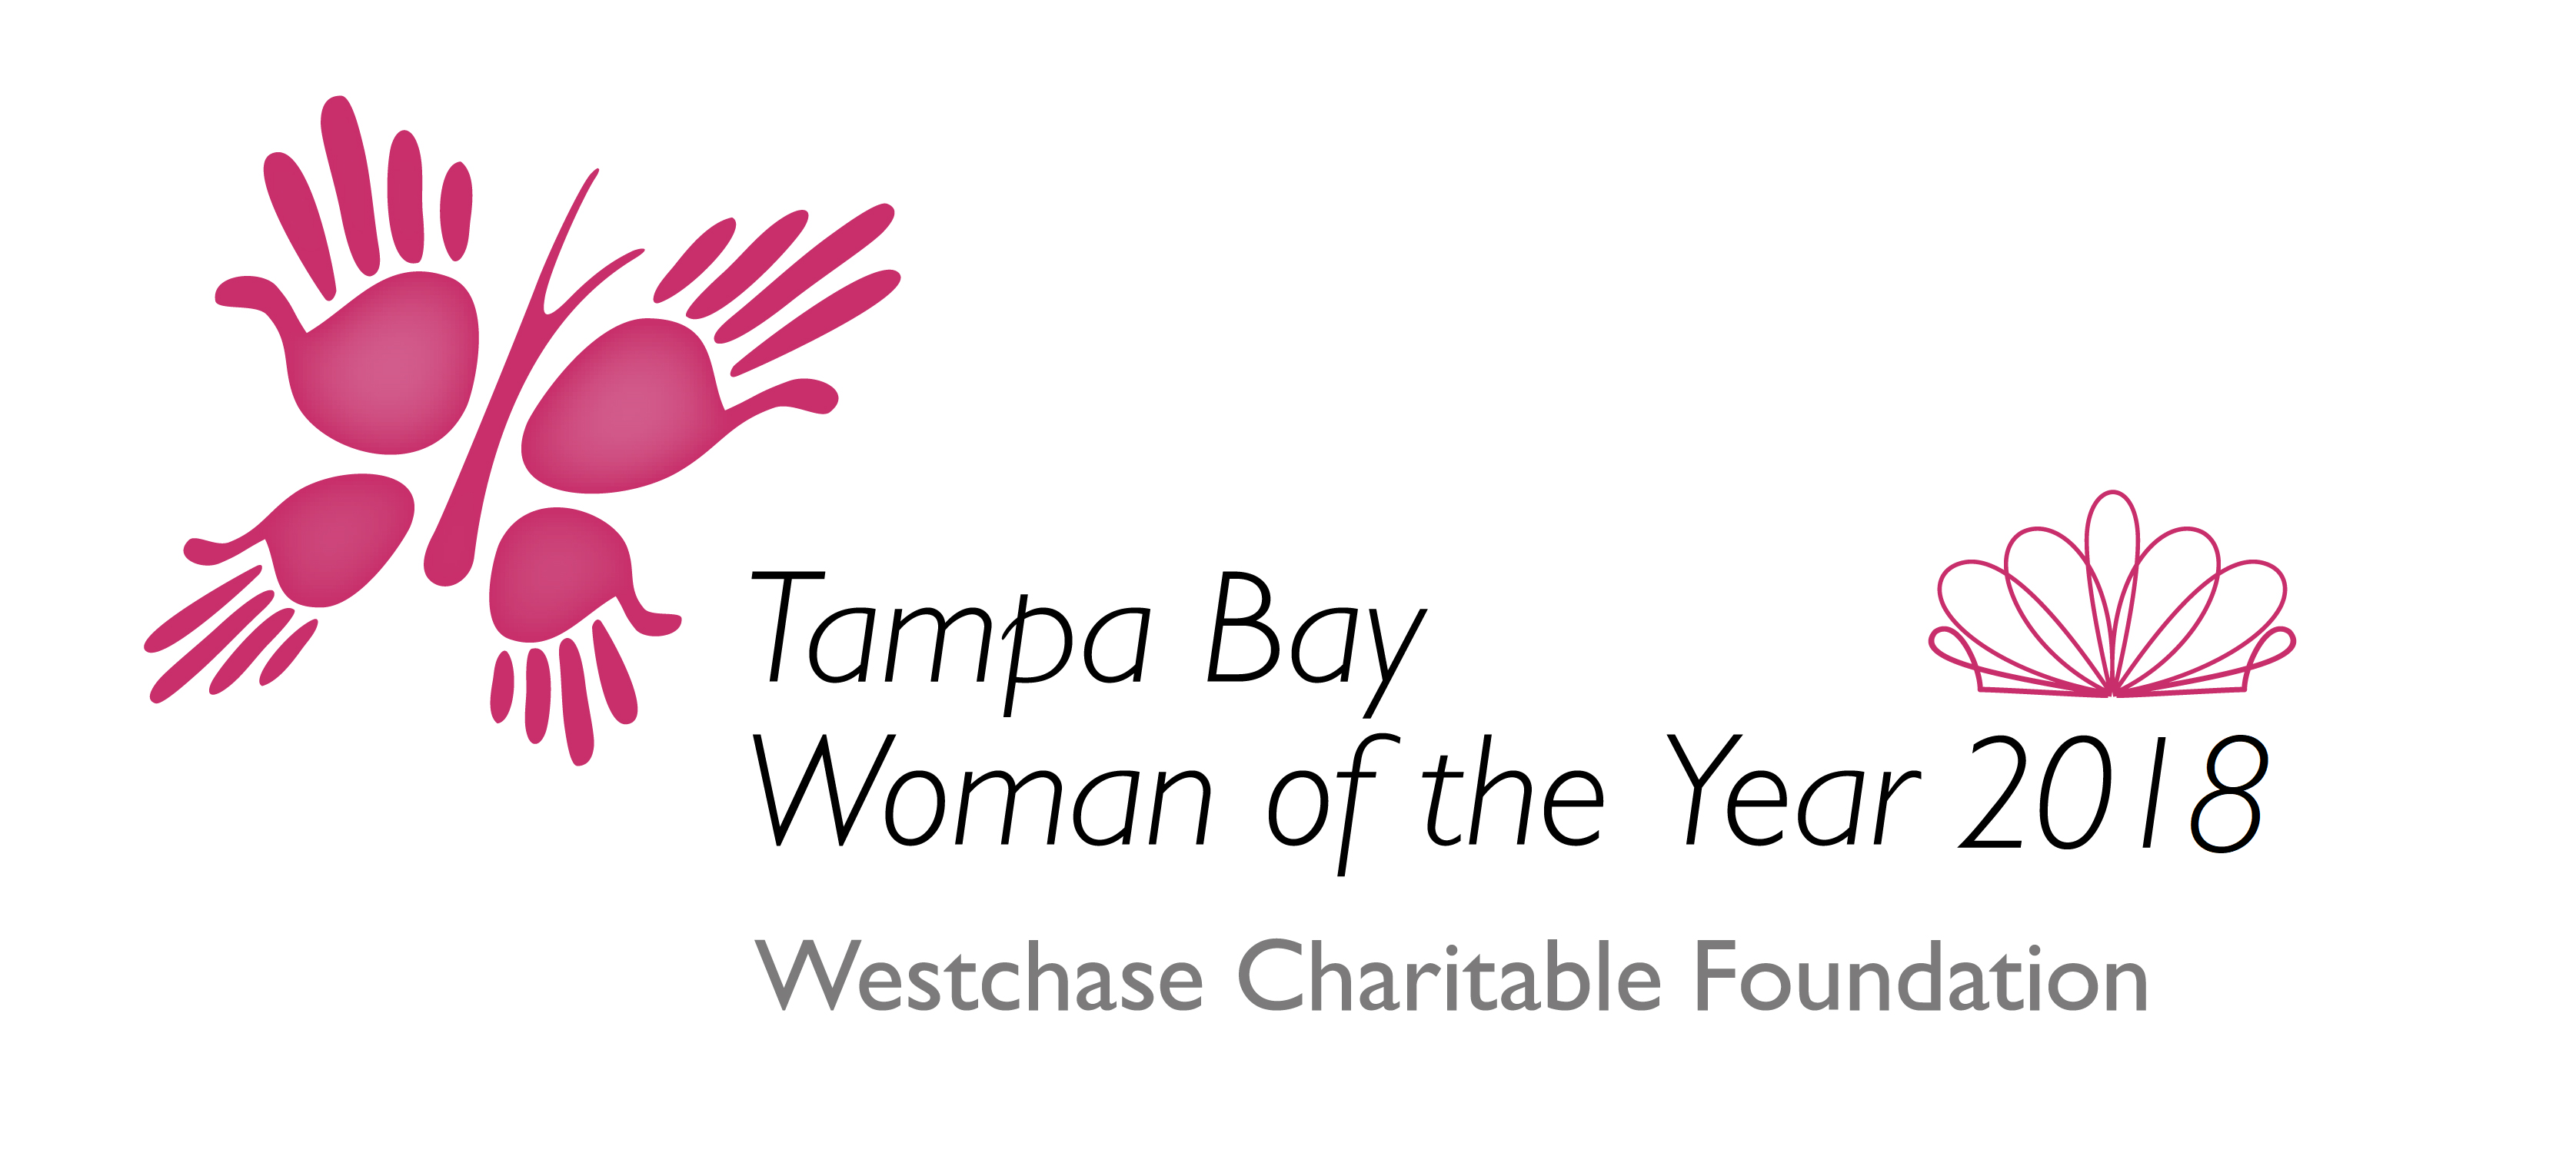 8th Annual Tampa Bay Woman of the Year